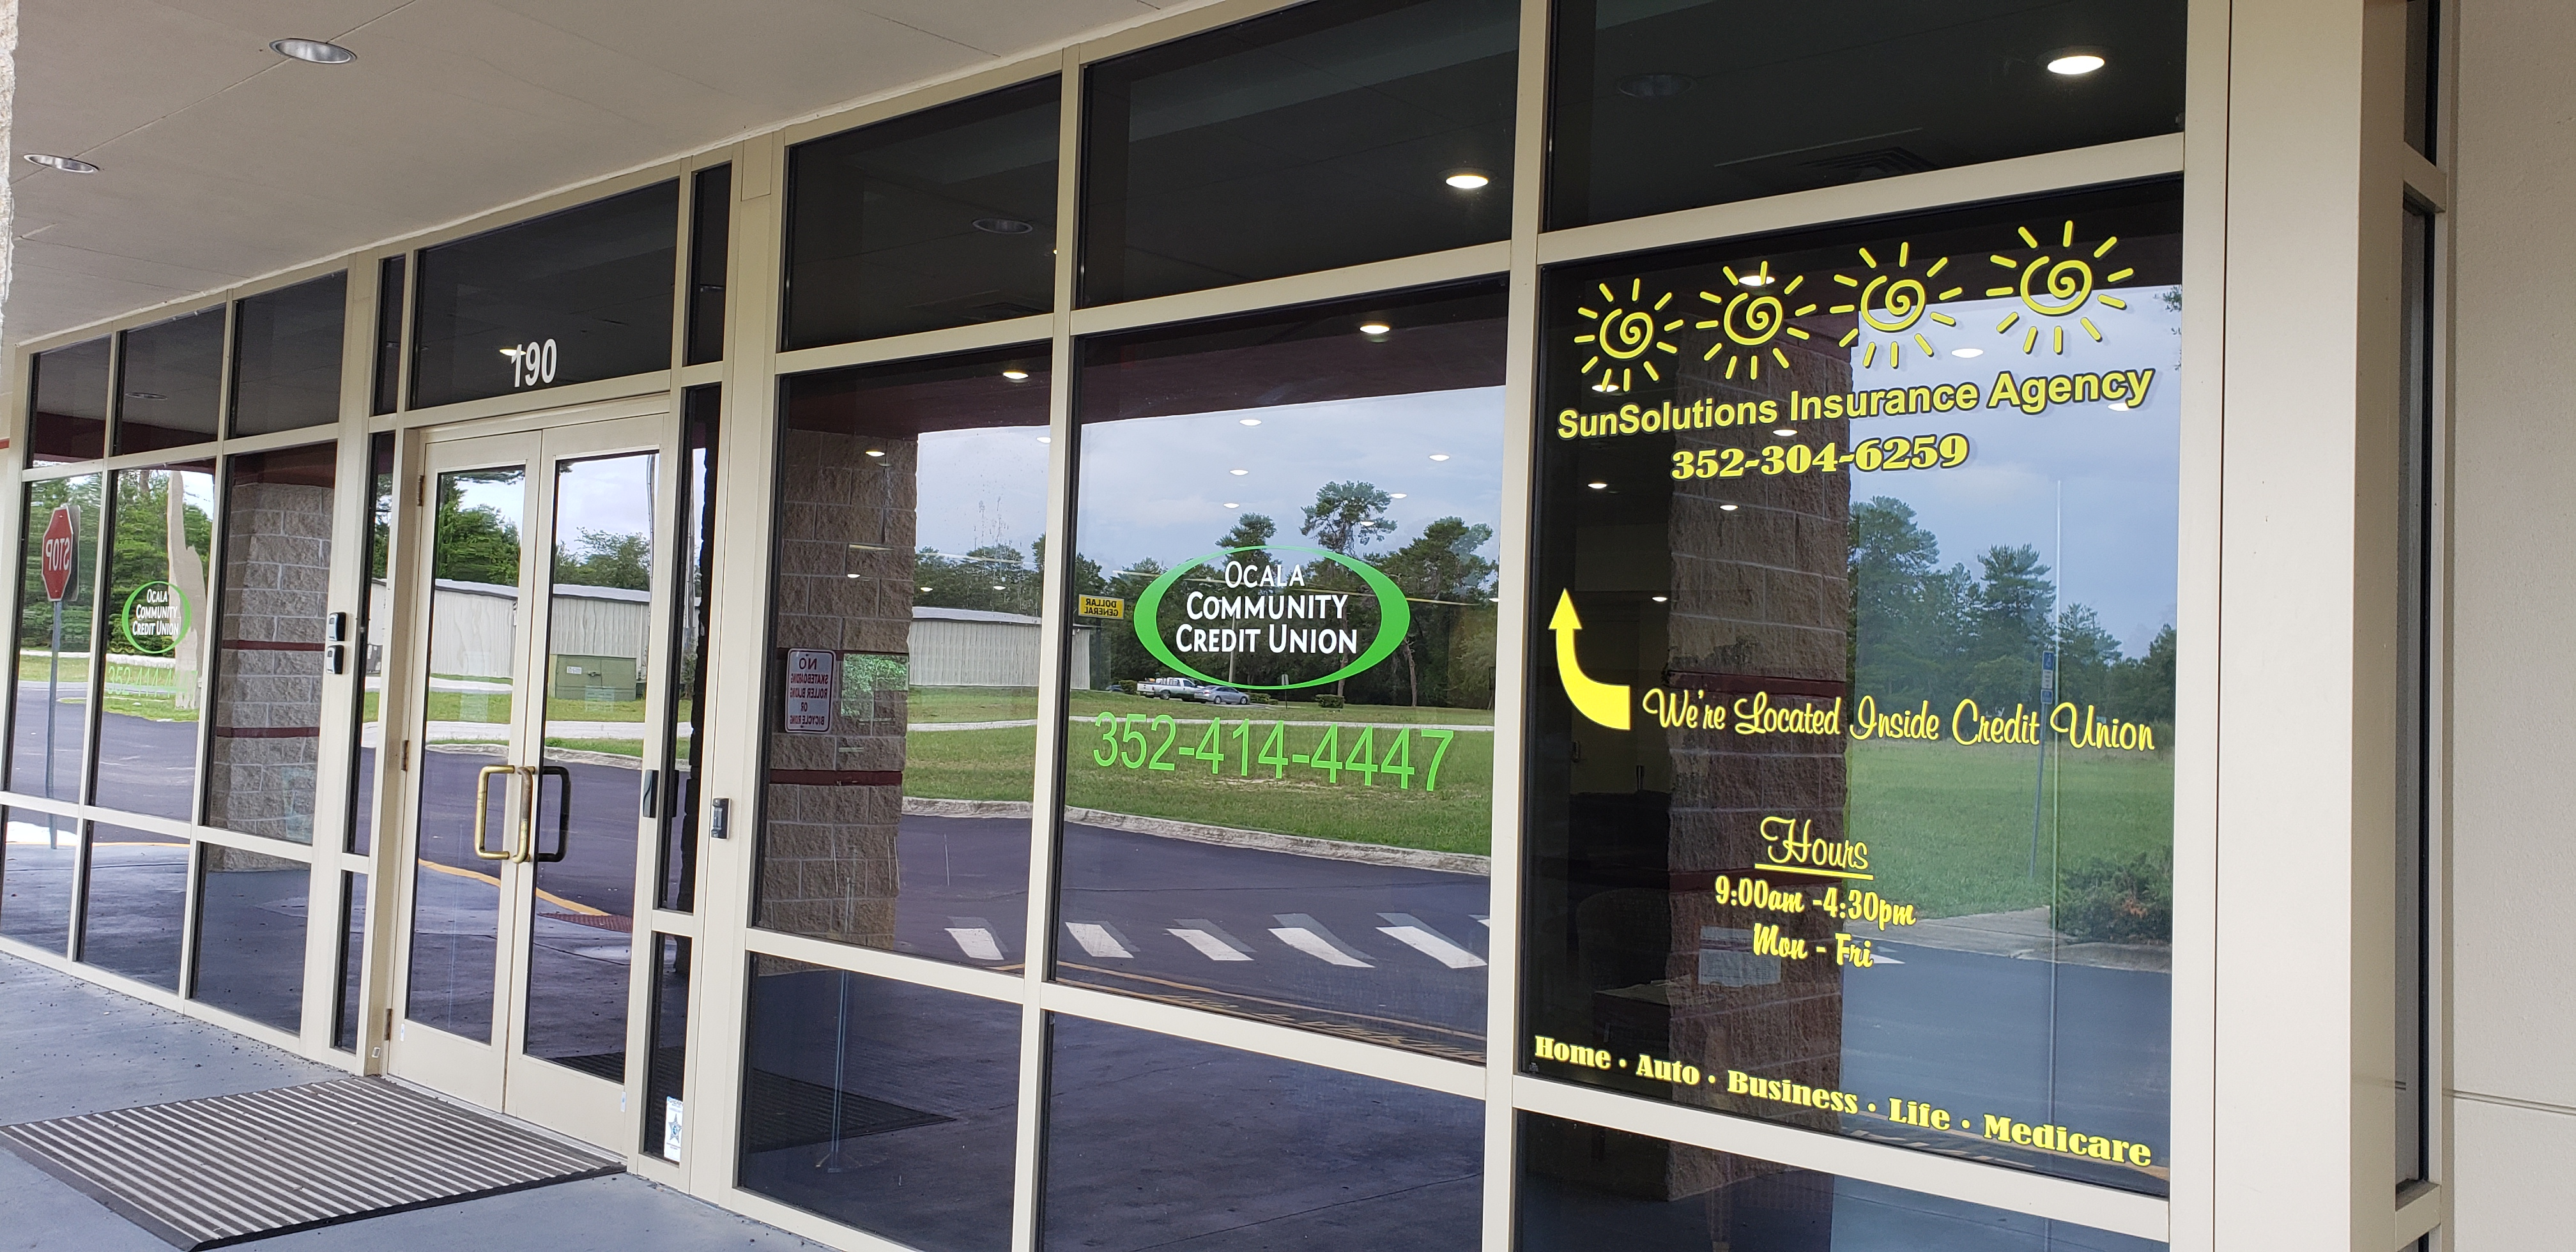 06-12-2019 Marion Oaks Branch - Window Signs3